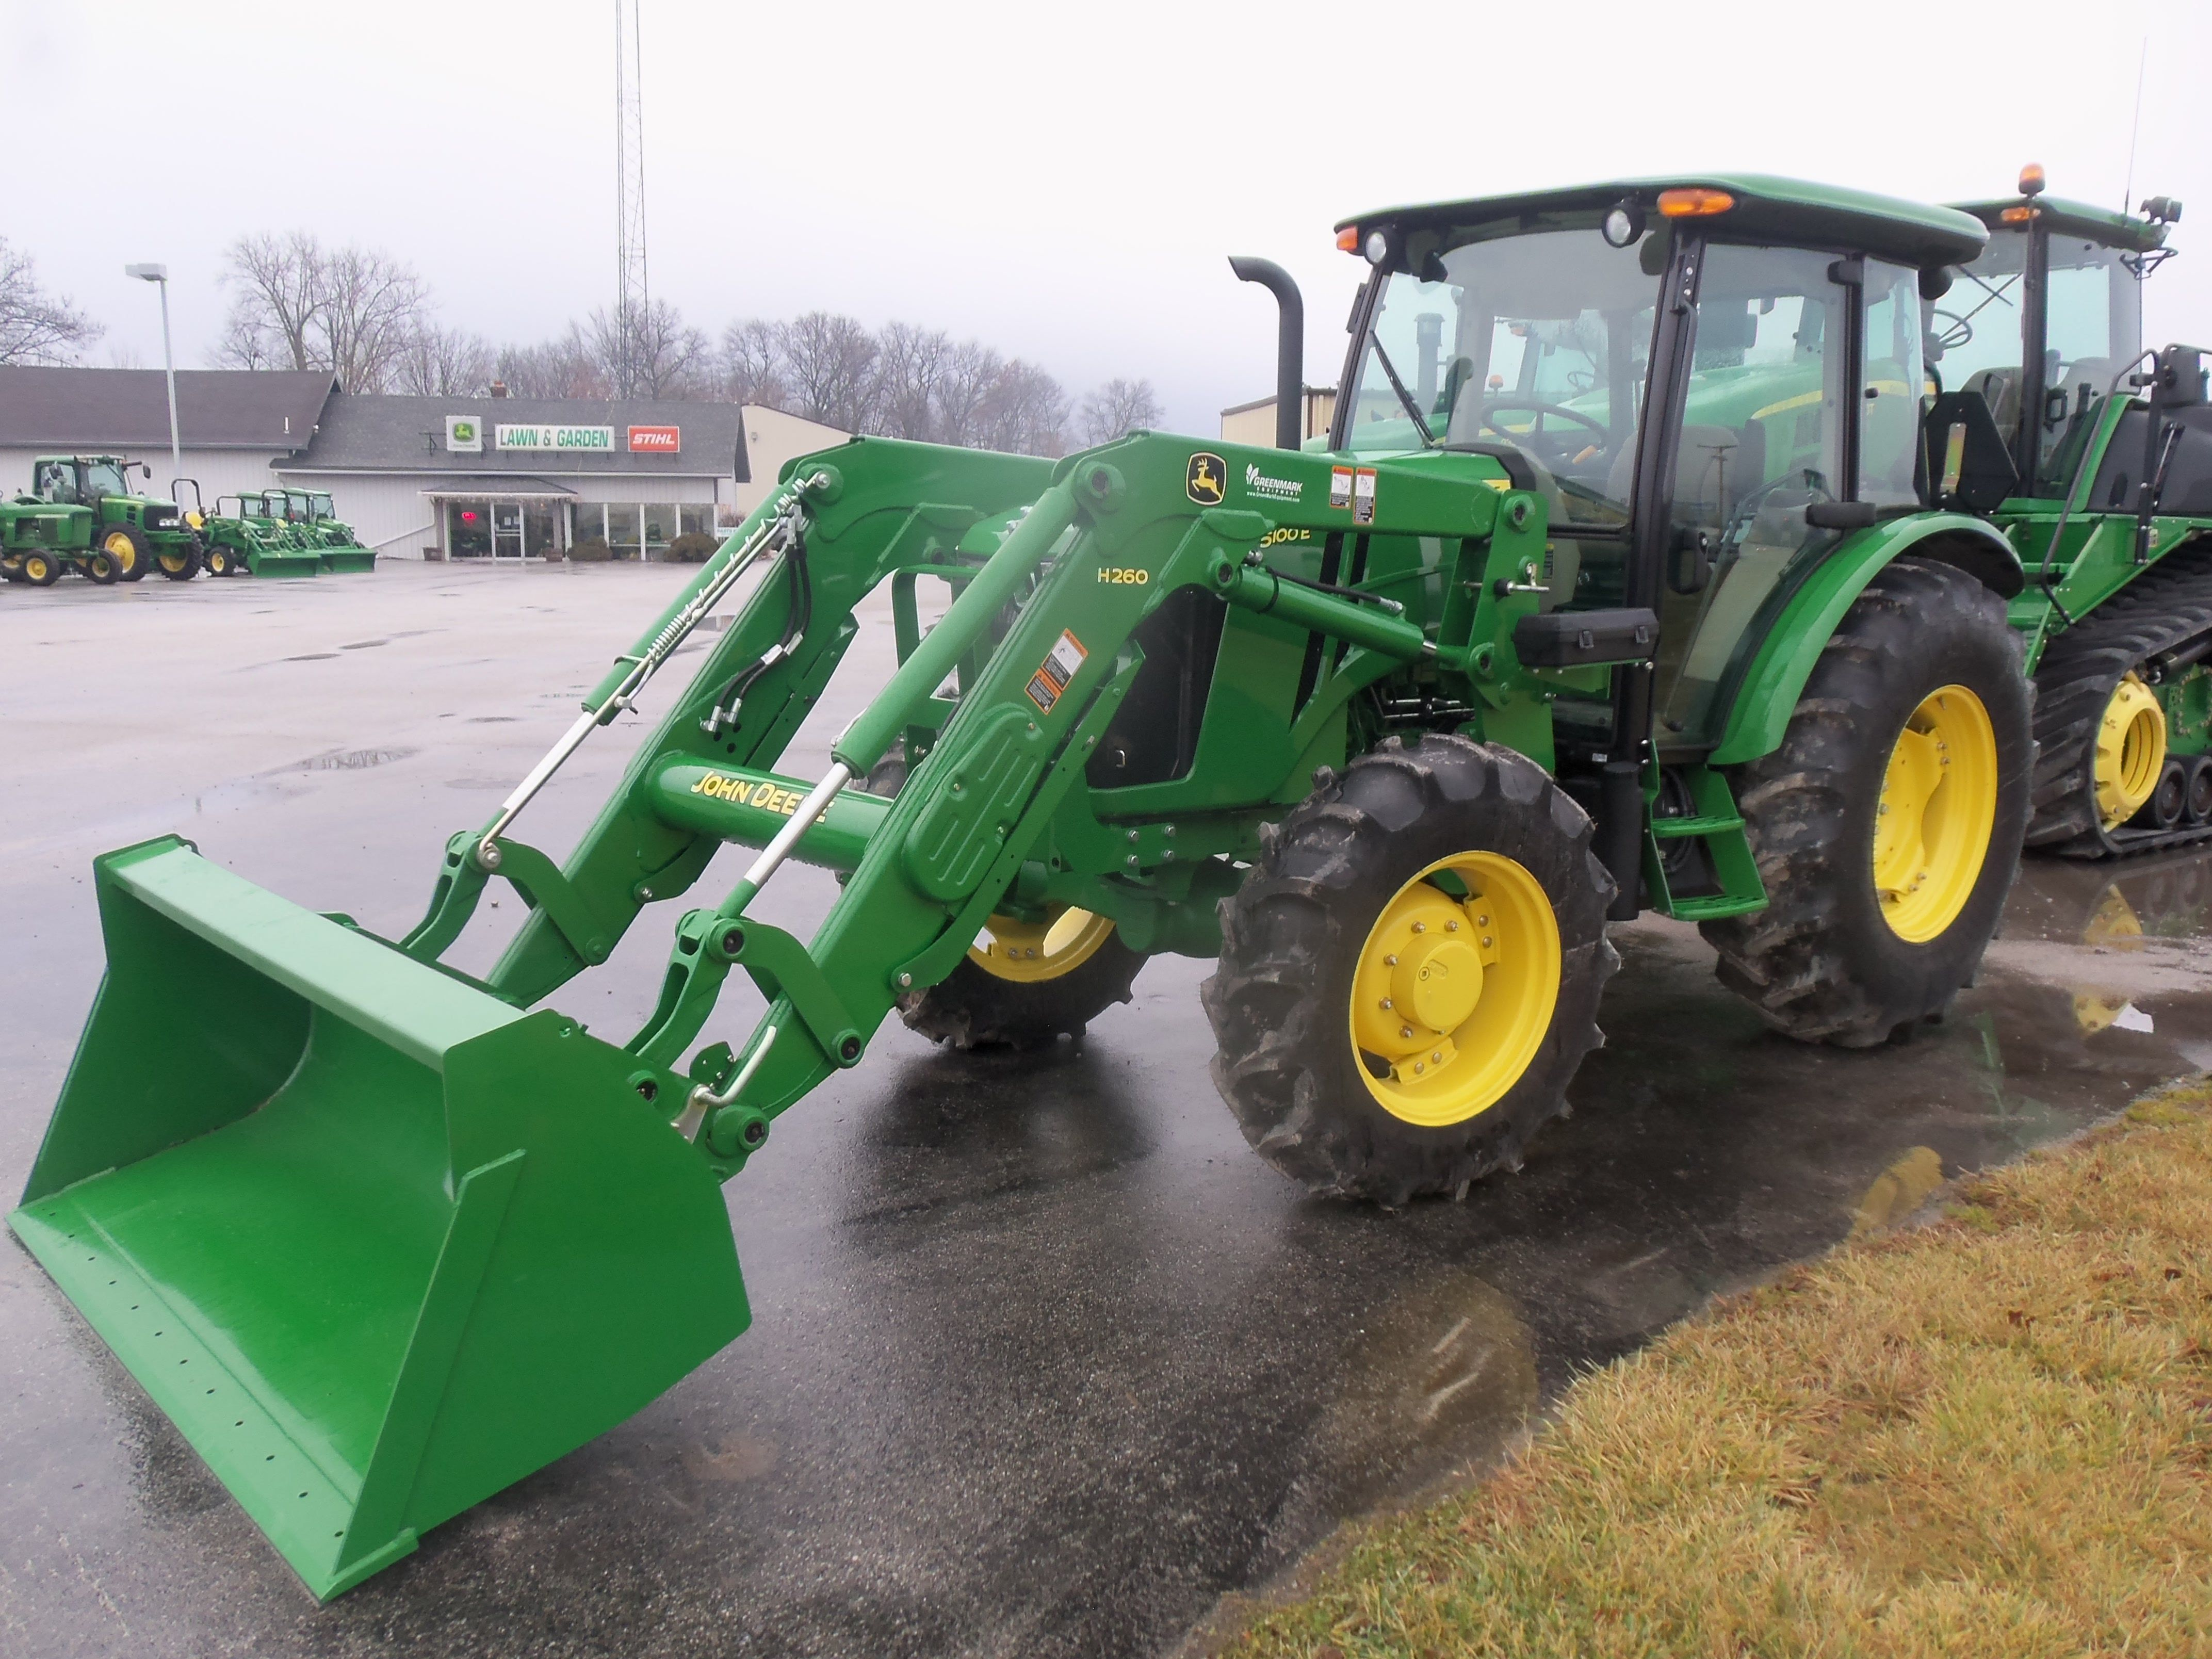 John Deere 5100E cab tractor with H260 loader